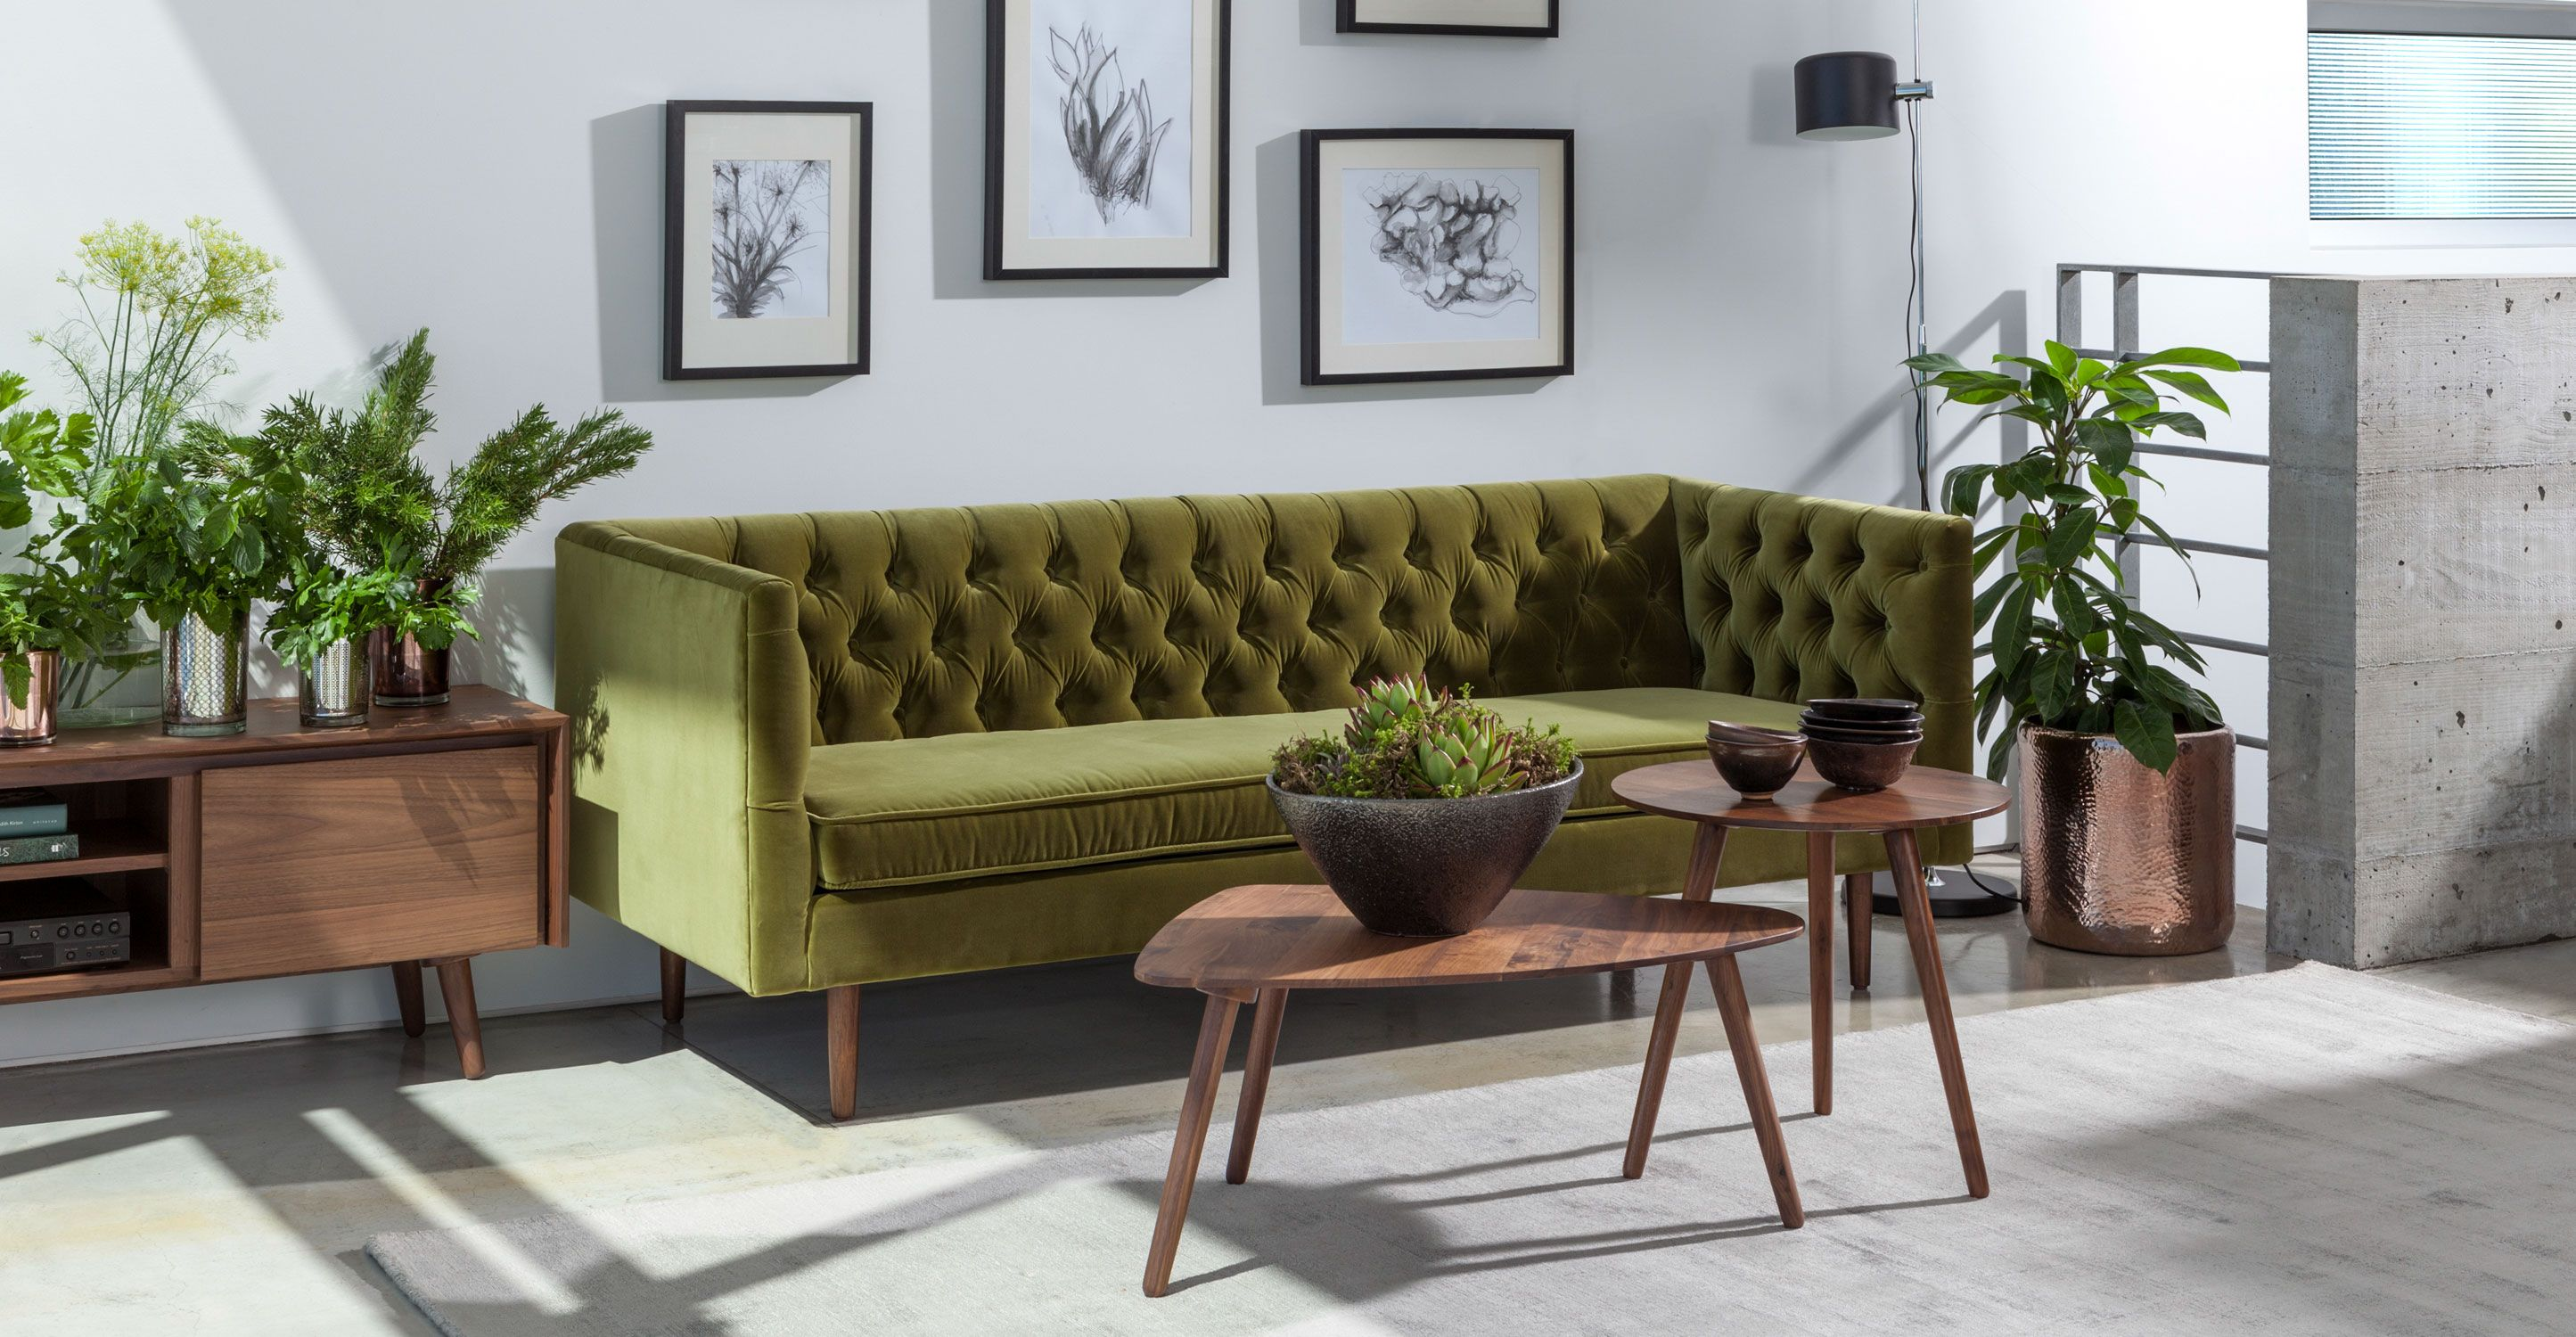 Chester Olive Green Sofa Sofas Article Modern Mid Century And Scandinavian Furniture Azeitona Verde #olive #green #living #room #set